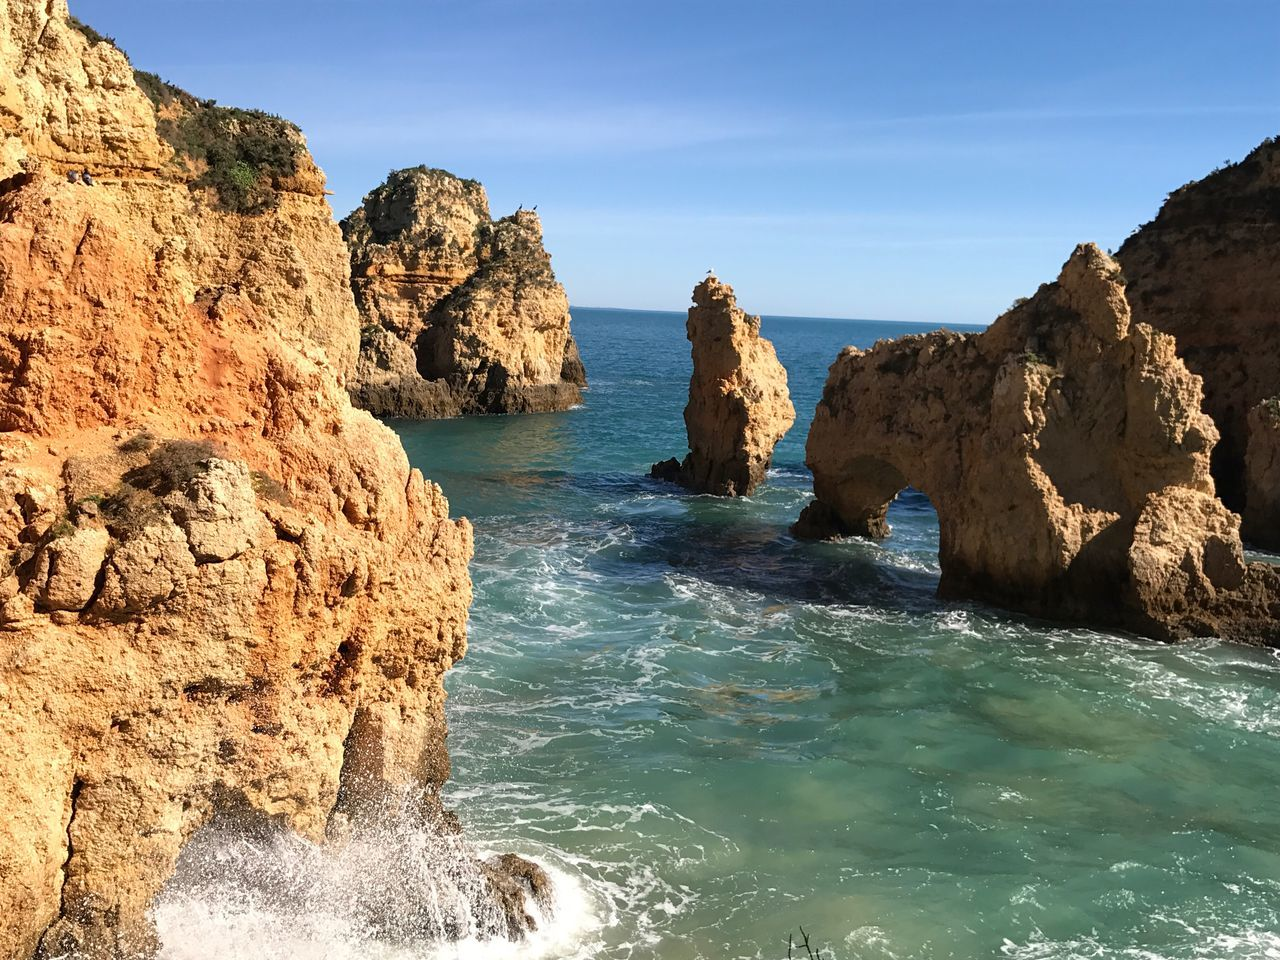 Ponta Da Piedade Lagos Algarve Portugal Sea Nature Beauty In Nature Rock - Object Rock Formation Scenics Tranquility Sky Water No People Tranquil Scene Outdoors Day Beach